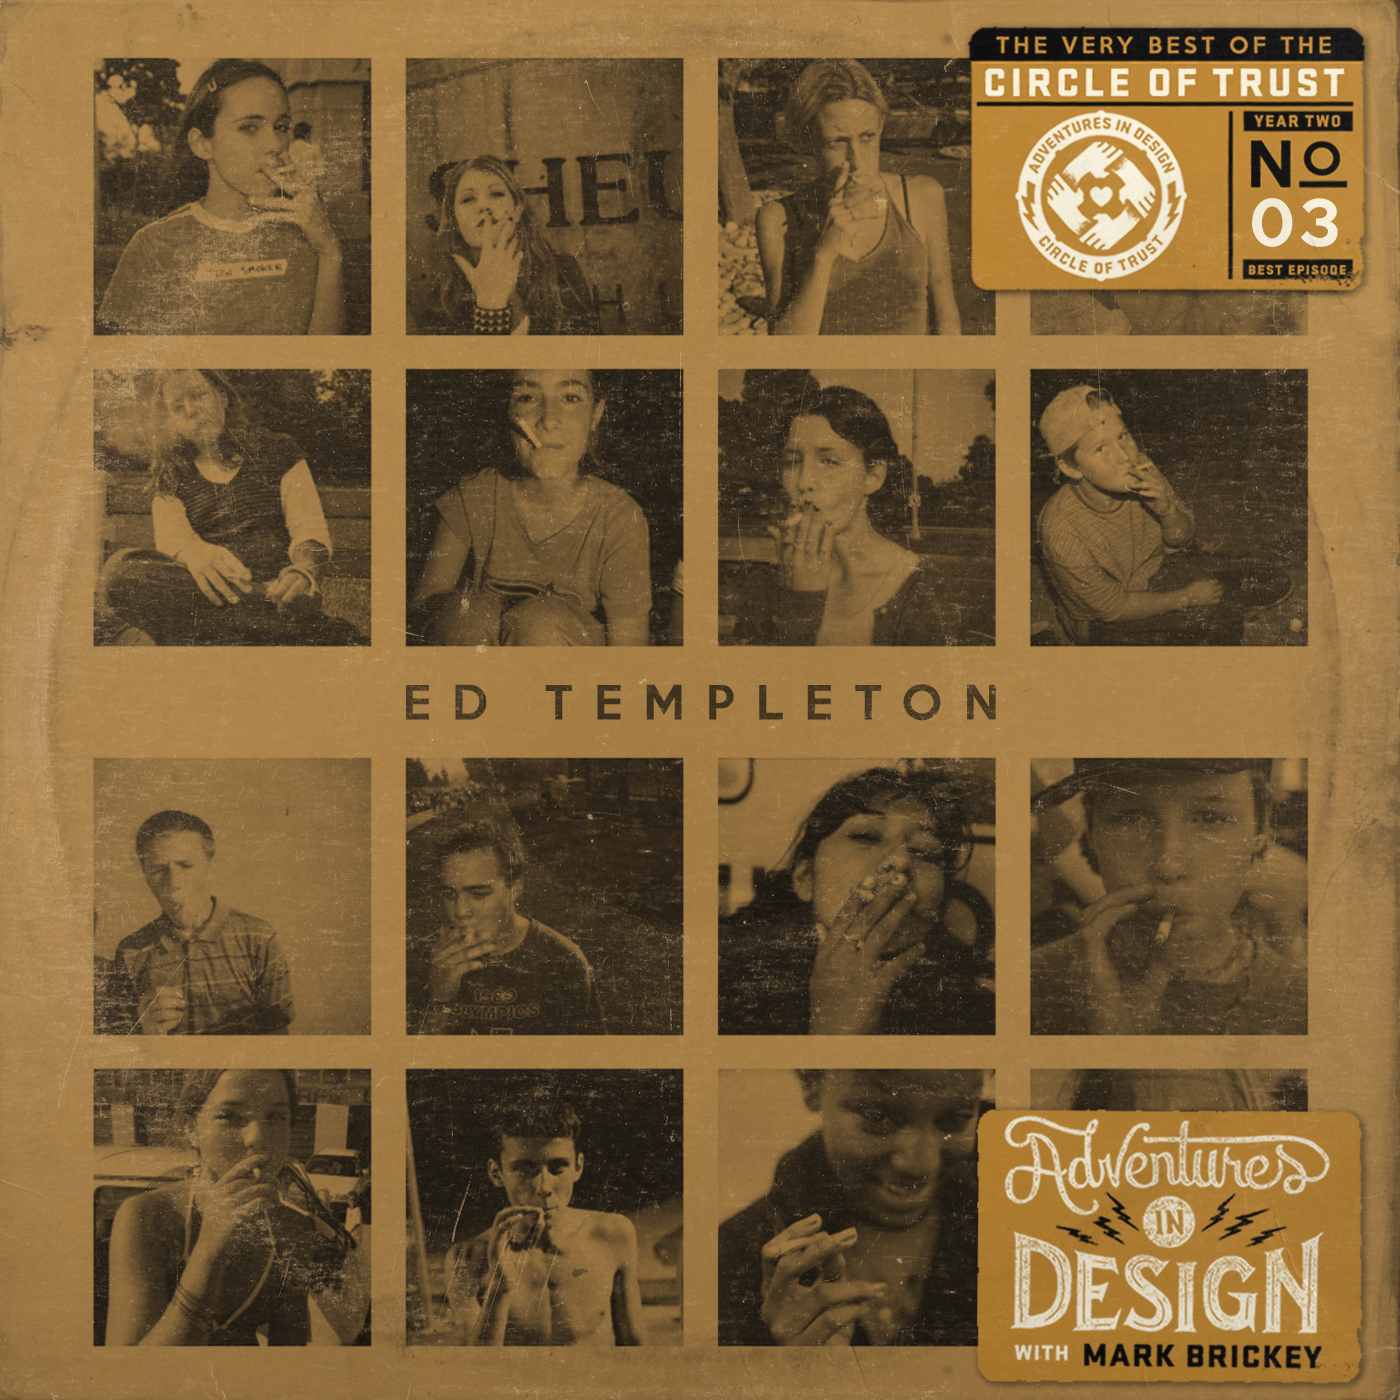 The Best Of The Circle Of Trust Year Two: 390 - Ed Templeton